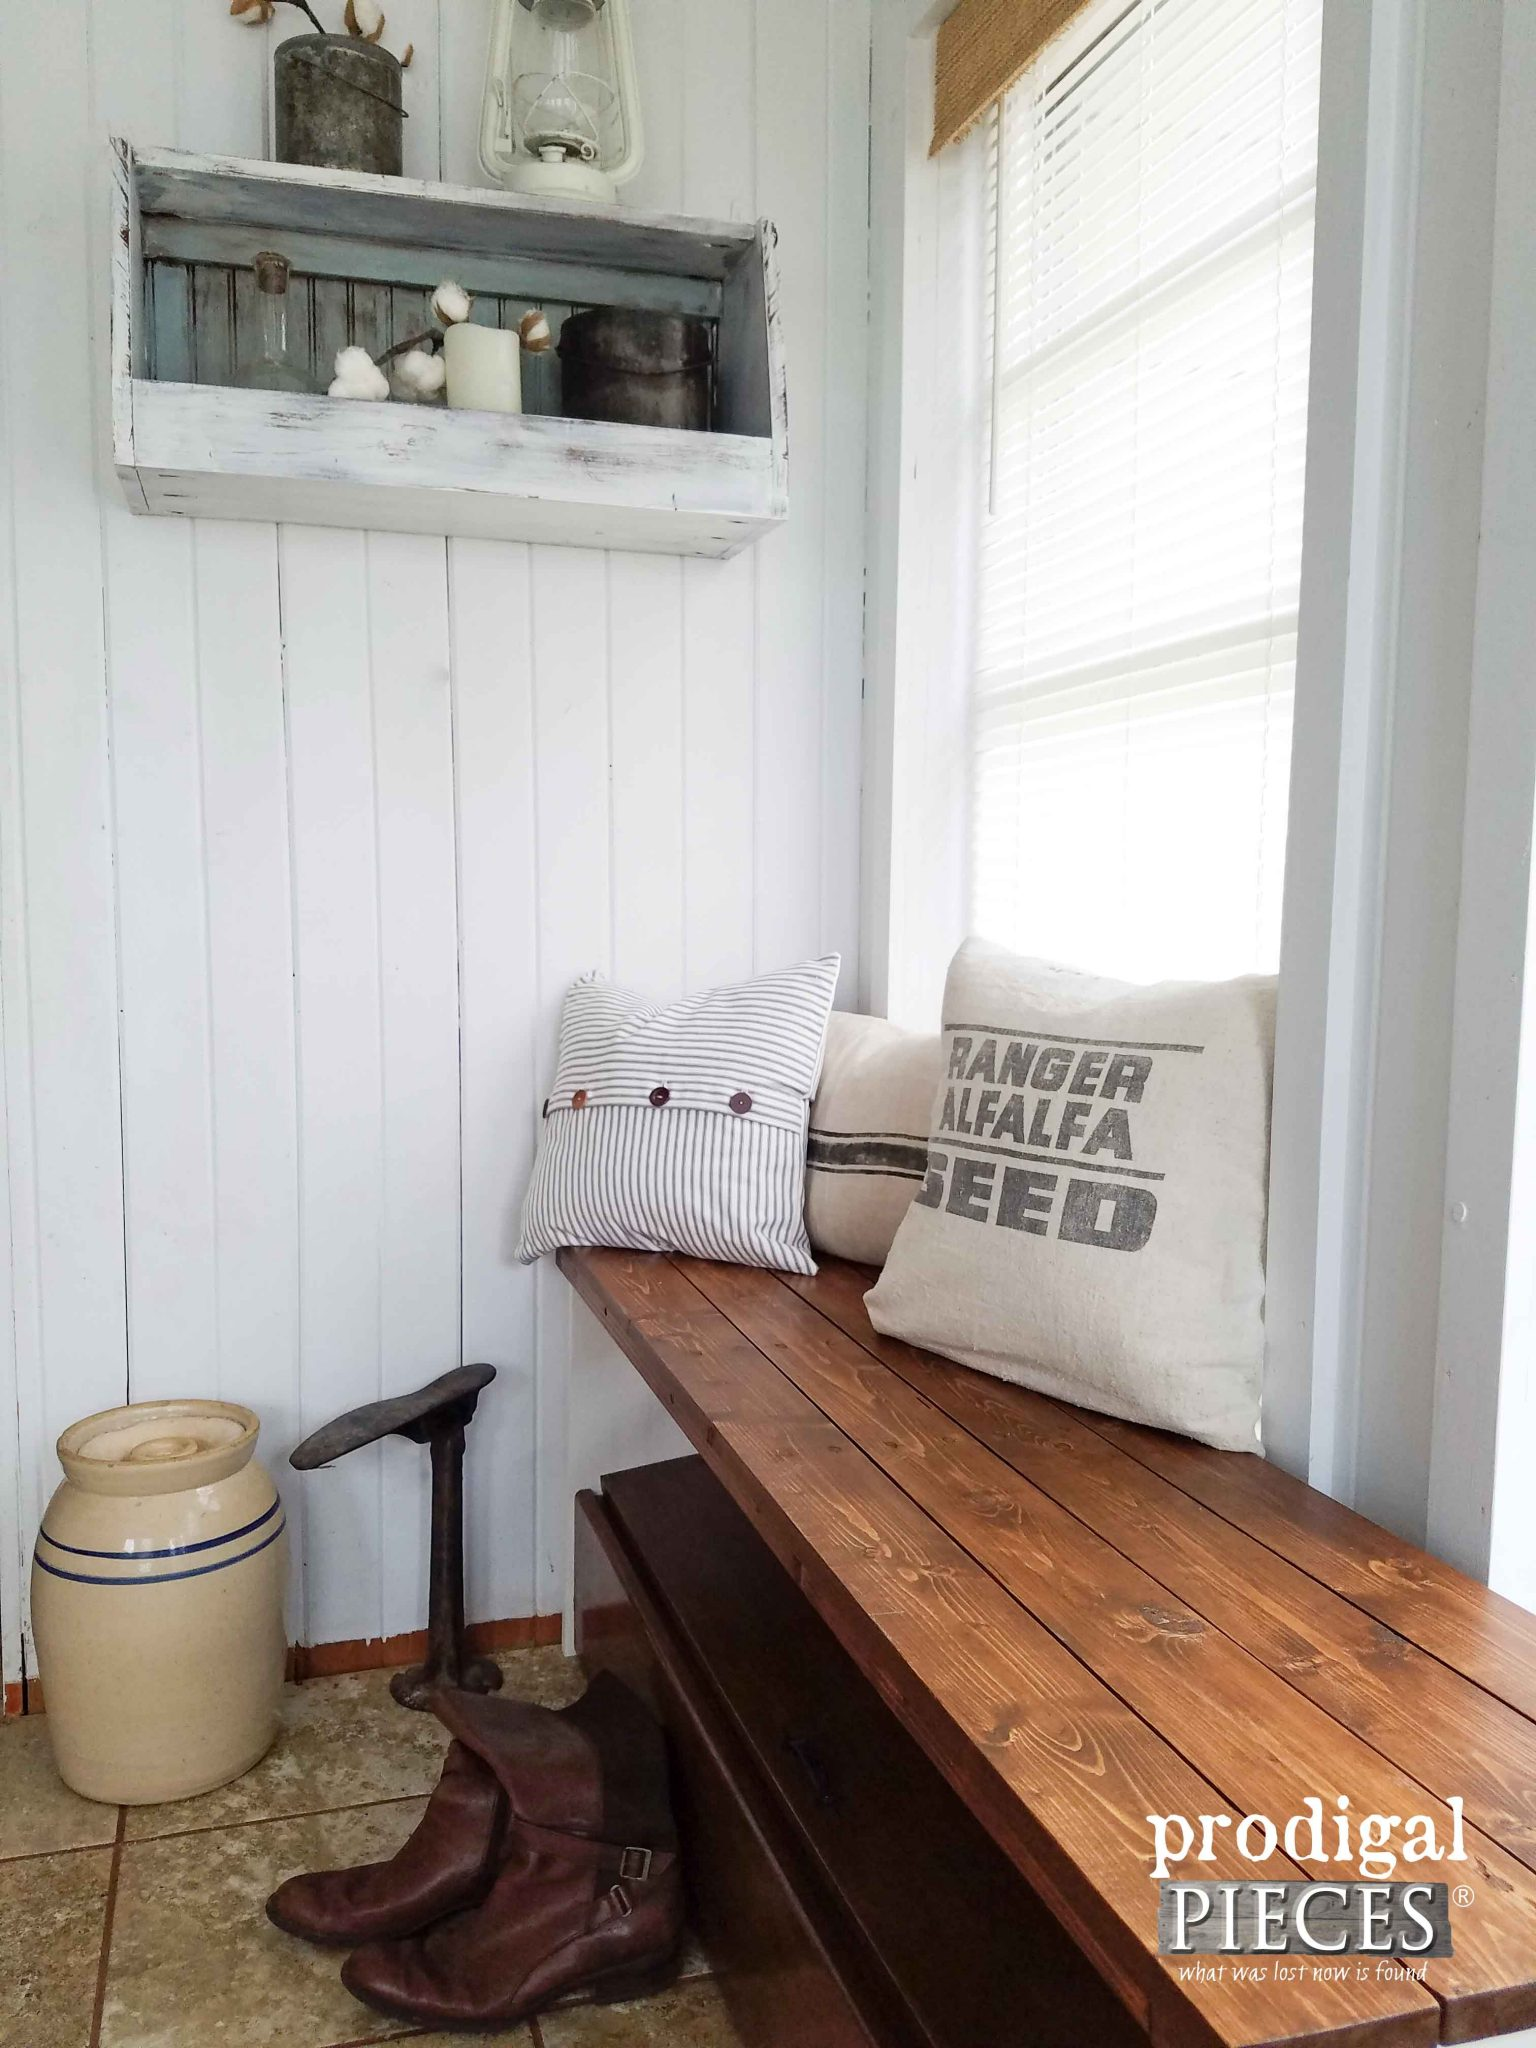 Farmhouse Style Entry with Repurposed Storage Bench & Wall Bin by Prodigal Pieces | prodigalpieces.com